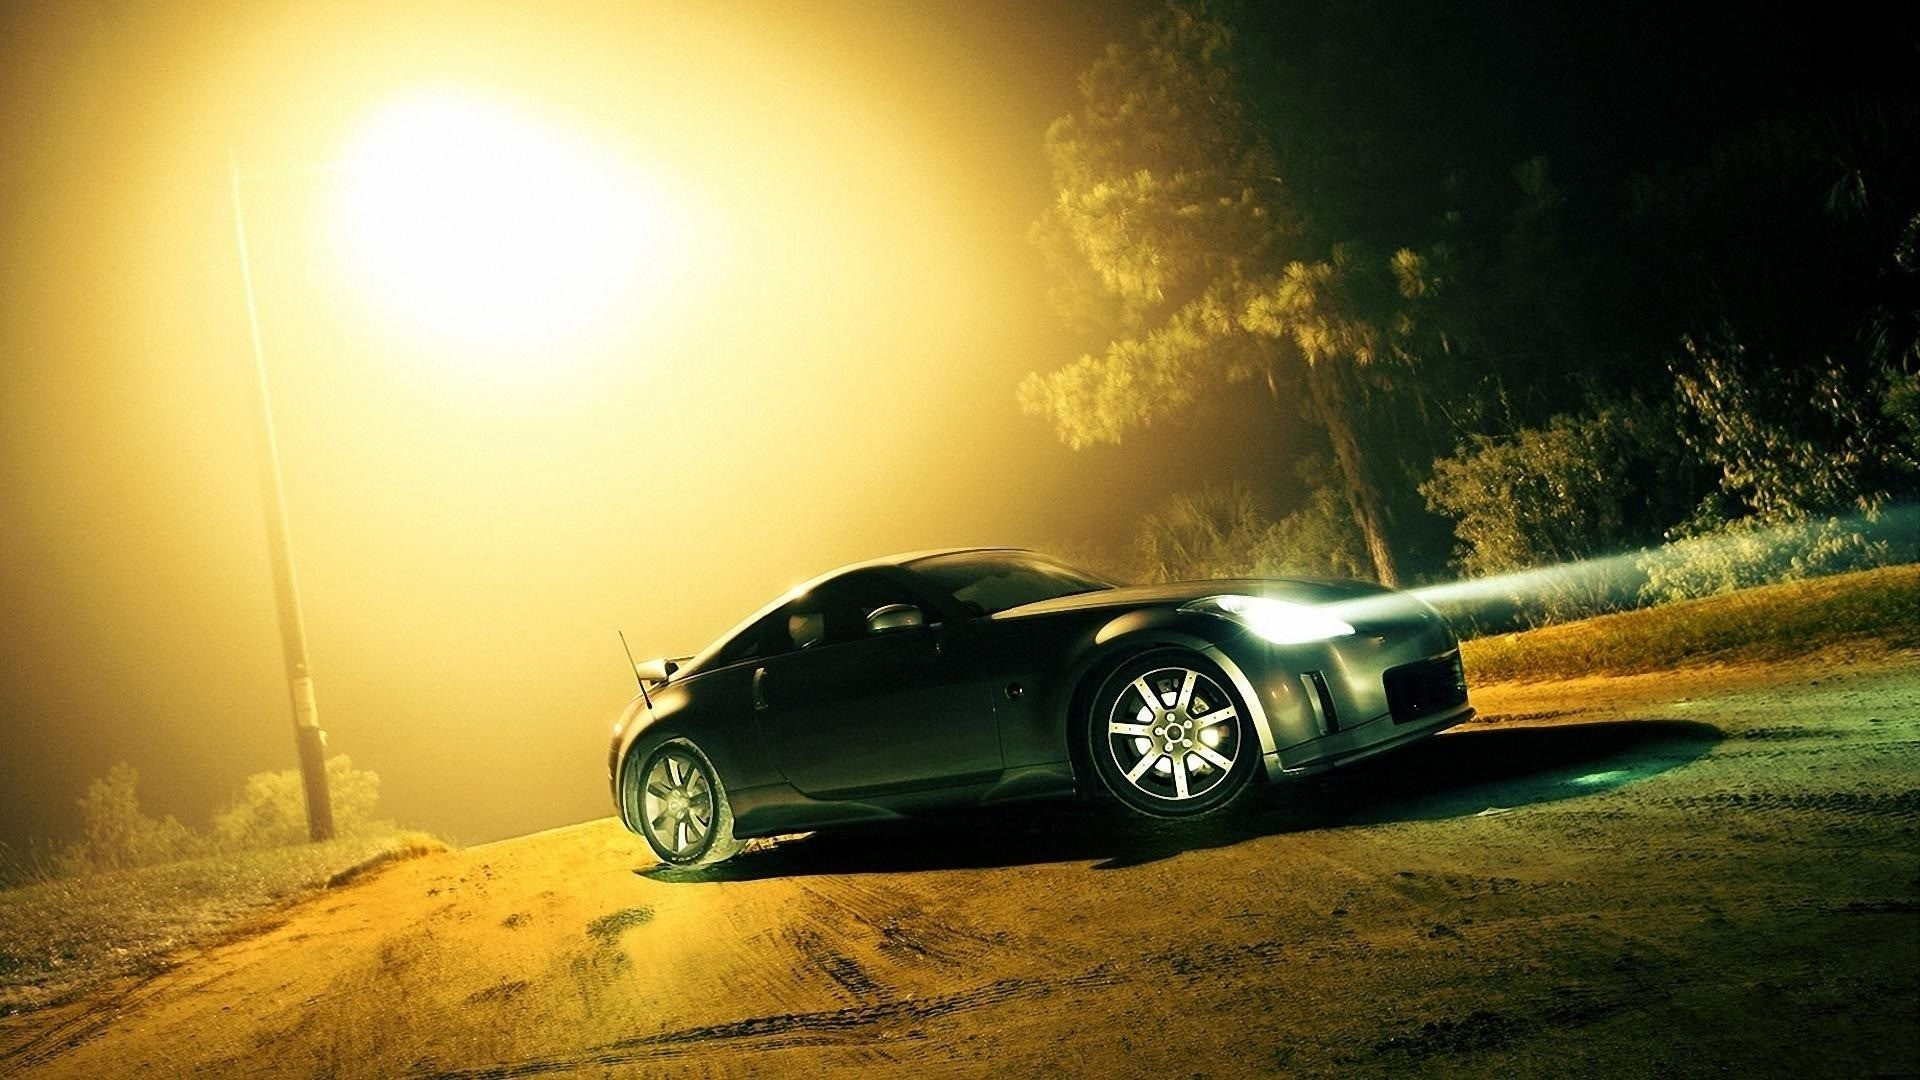 Nissan 270Z is such a badass car (With images) Cool car